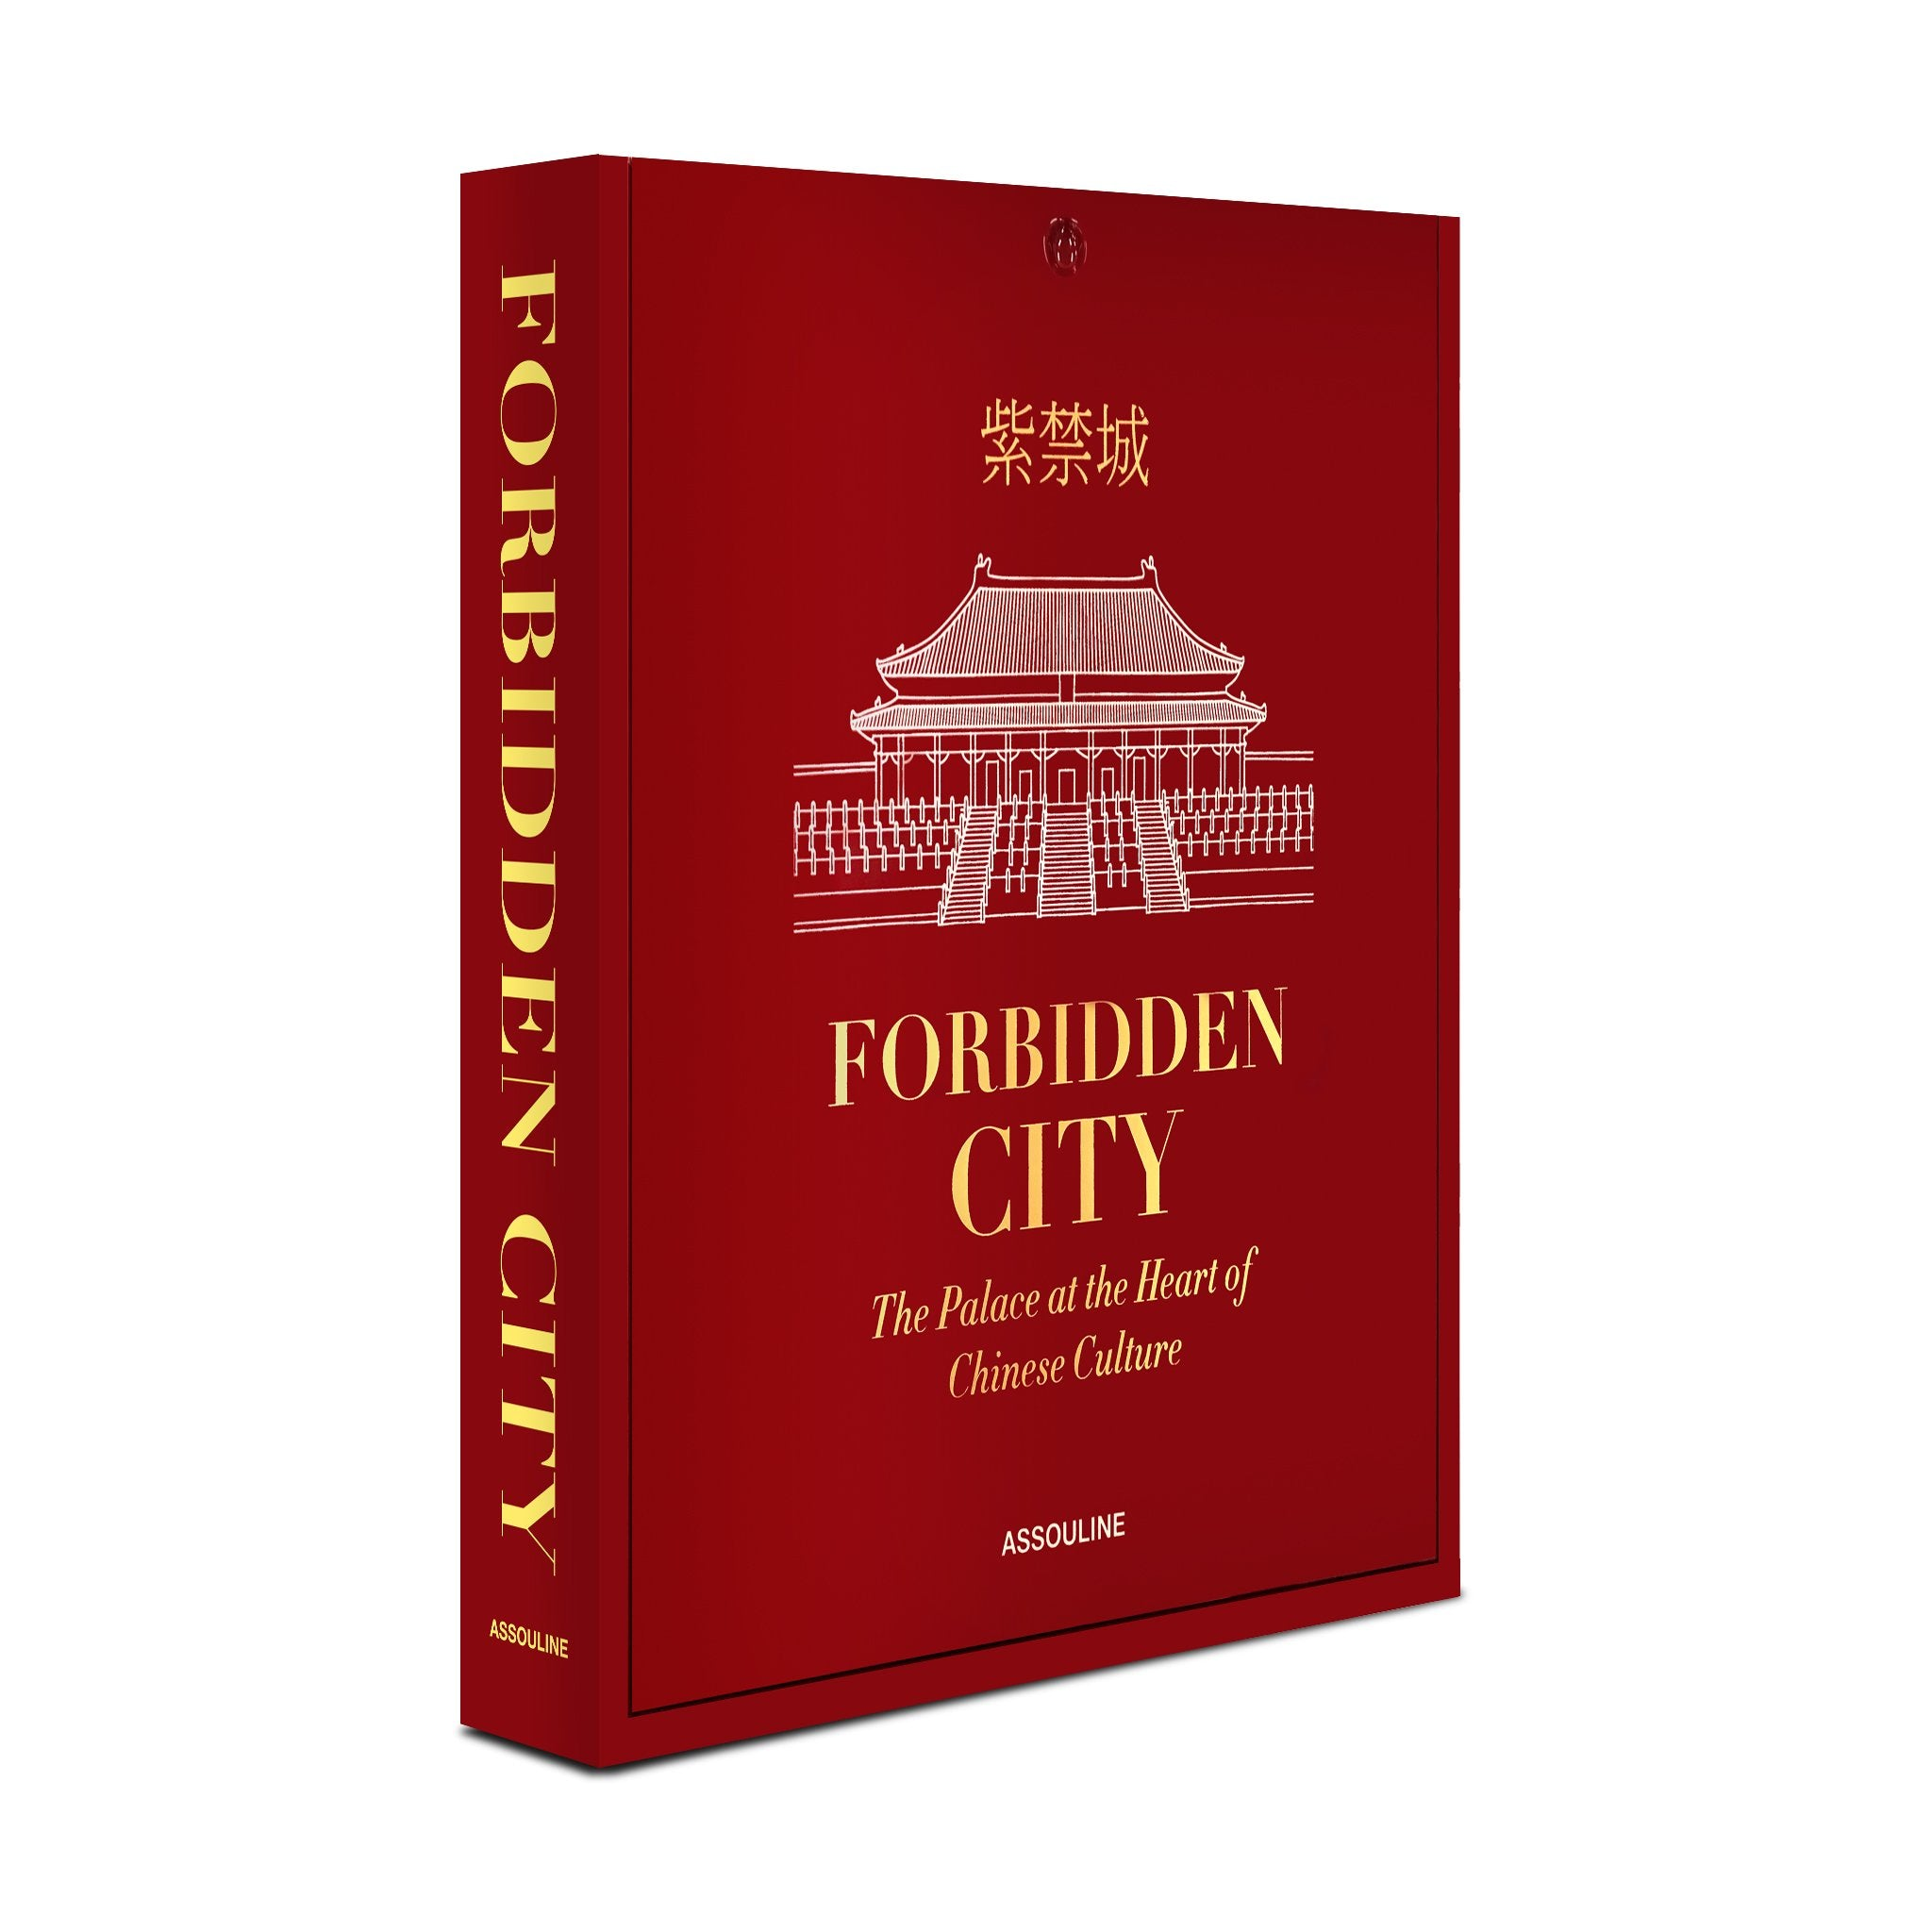 Forbidden City: The Palace at the Heart of Chinese Culture